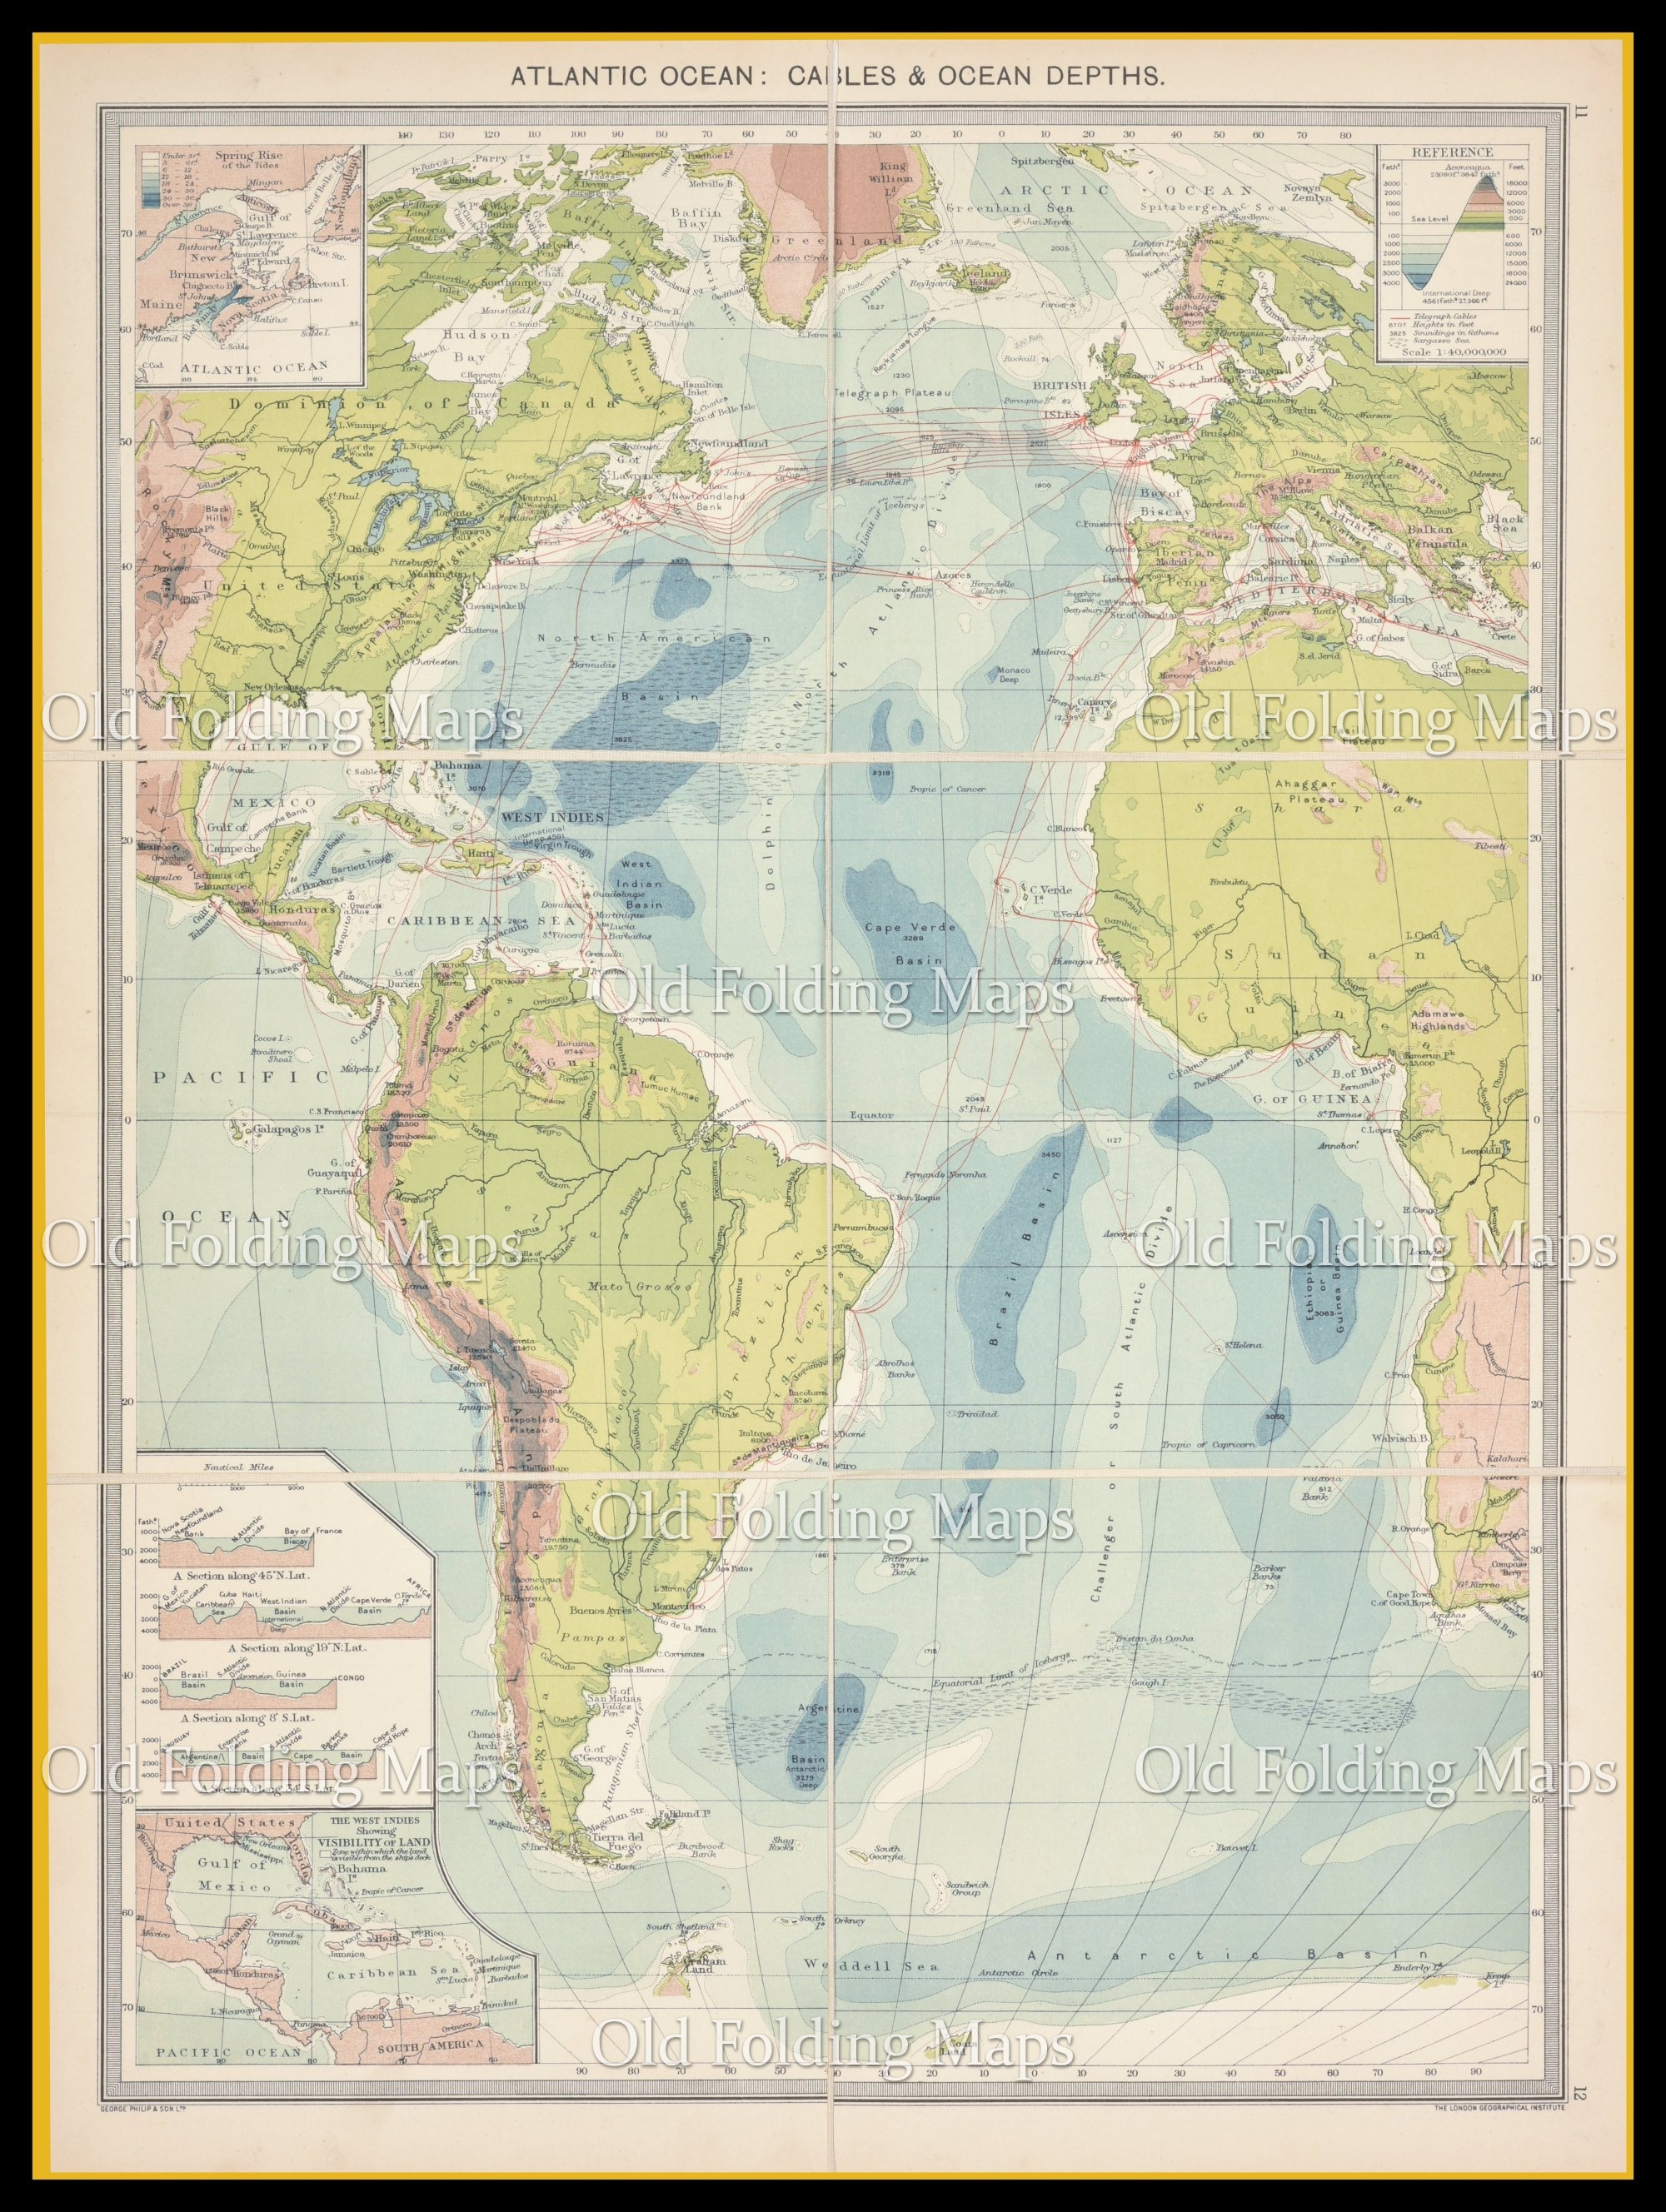 Old Map of The Atlantic Ocean. Cables & Depths circa 1900